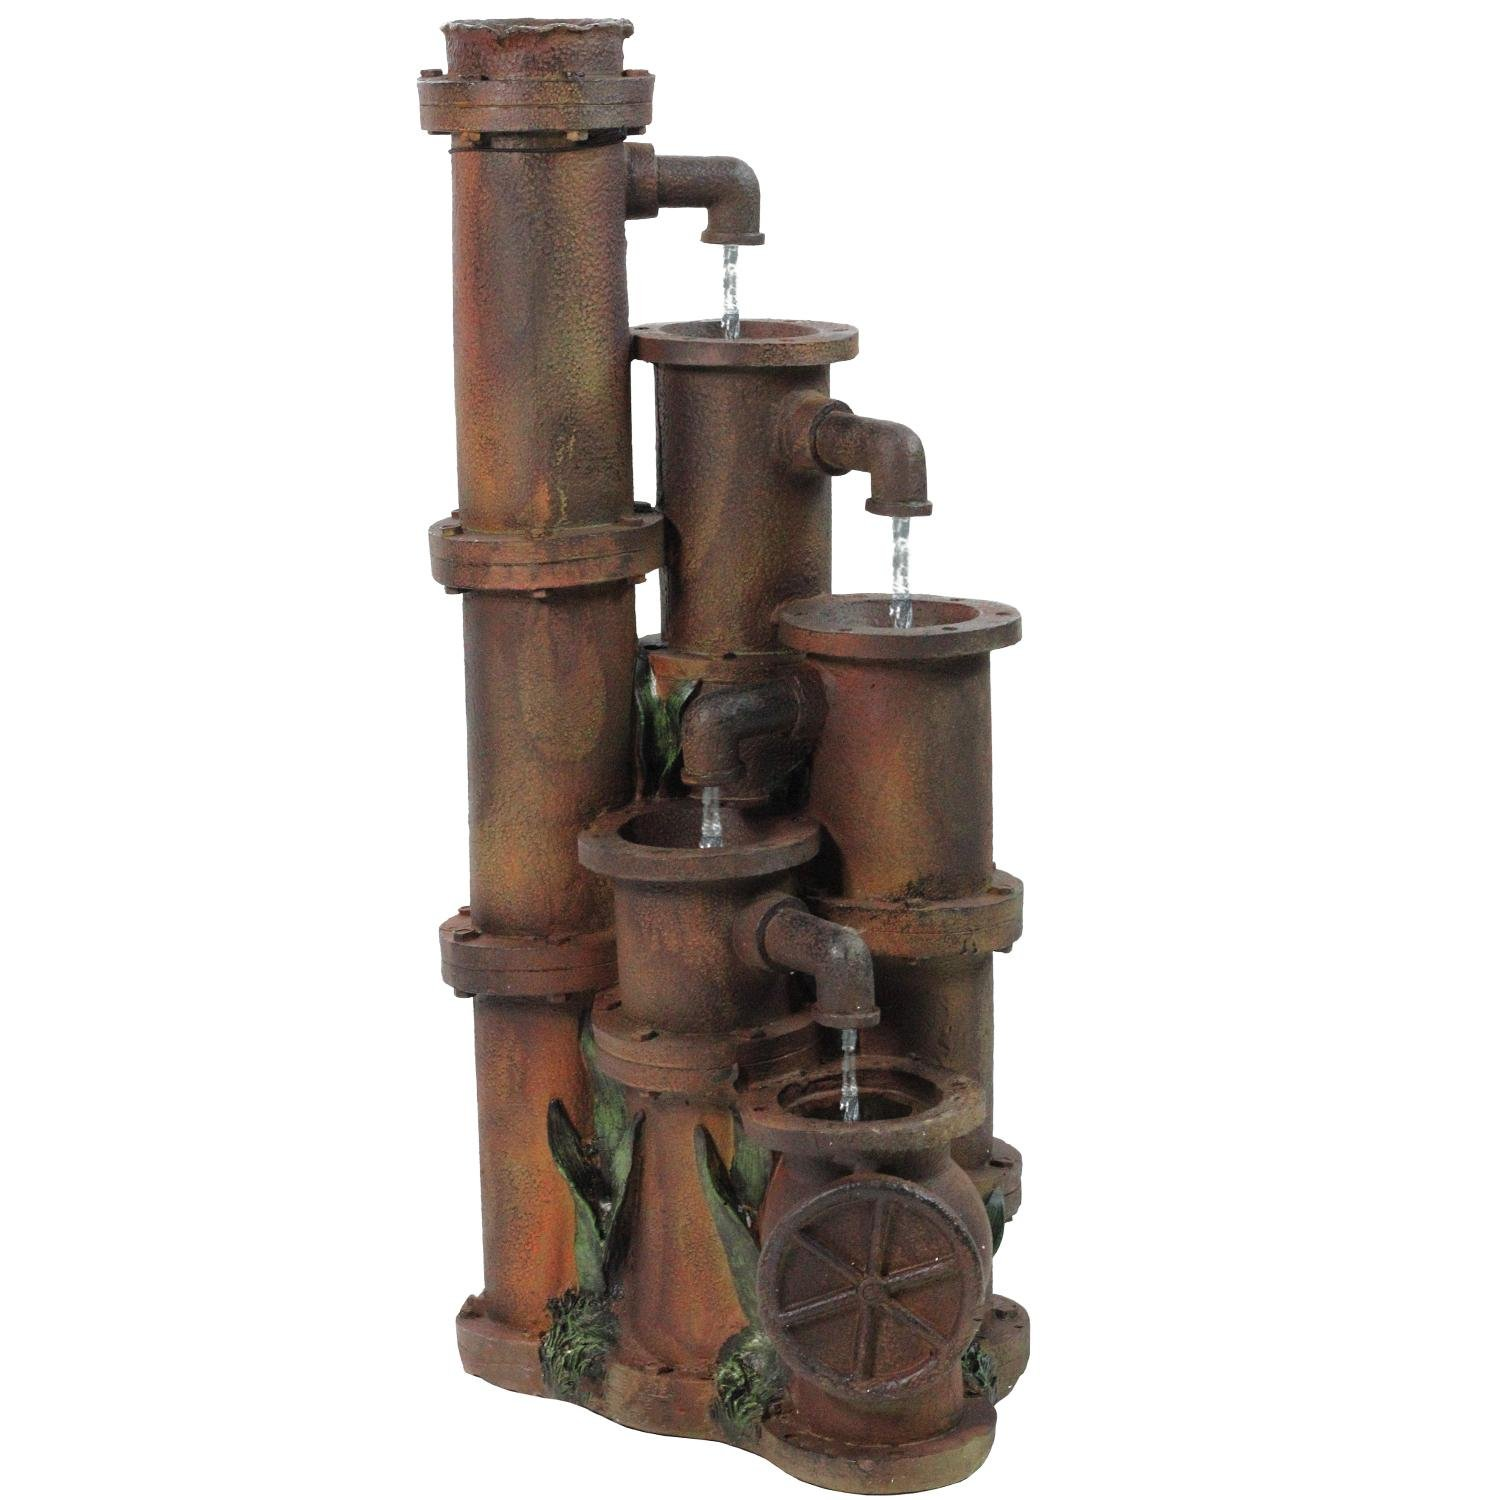 Northlight Rusted Cascading Pipes Outdoor Patio Garden Water Fountain, 23.5